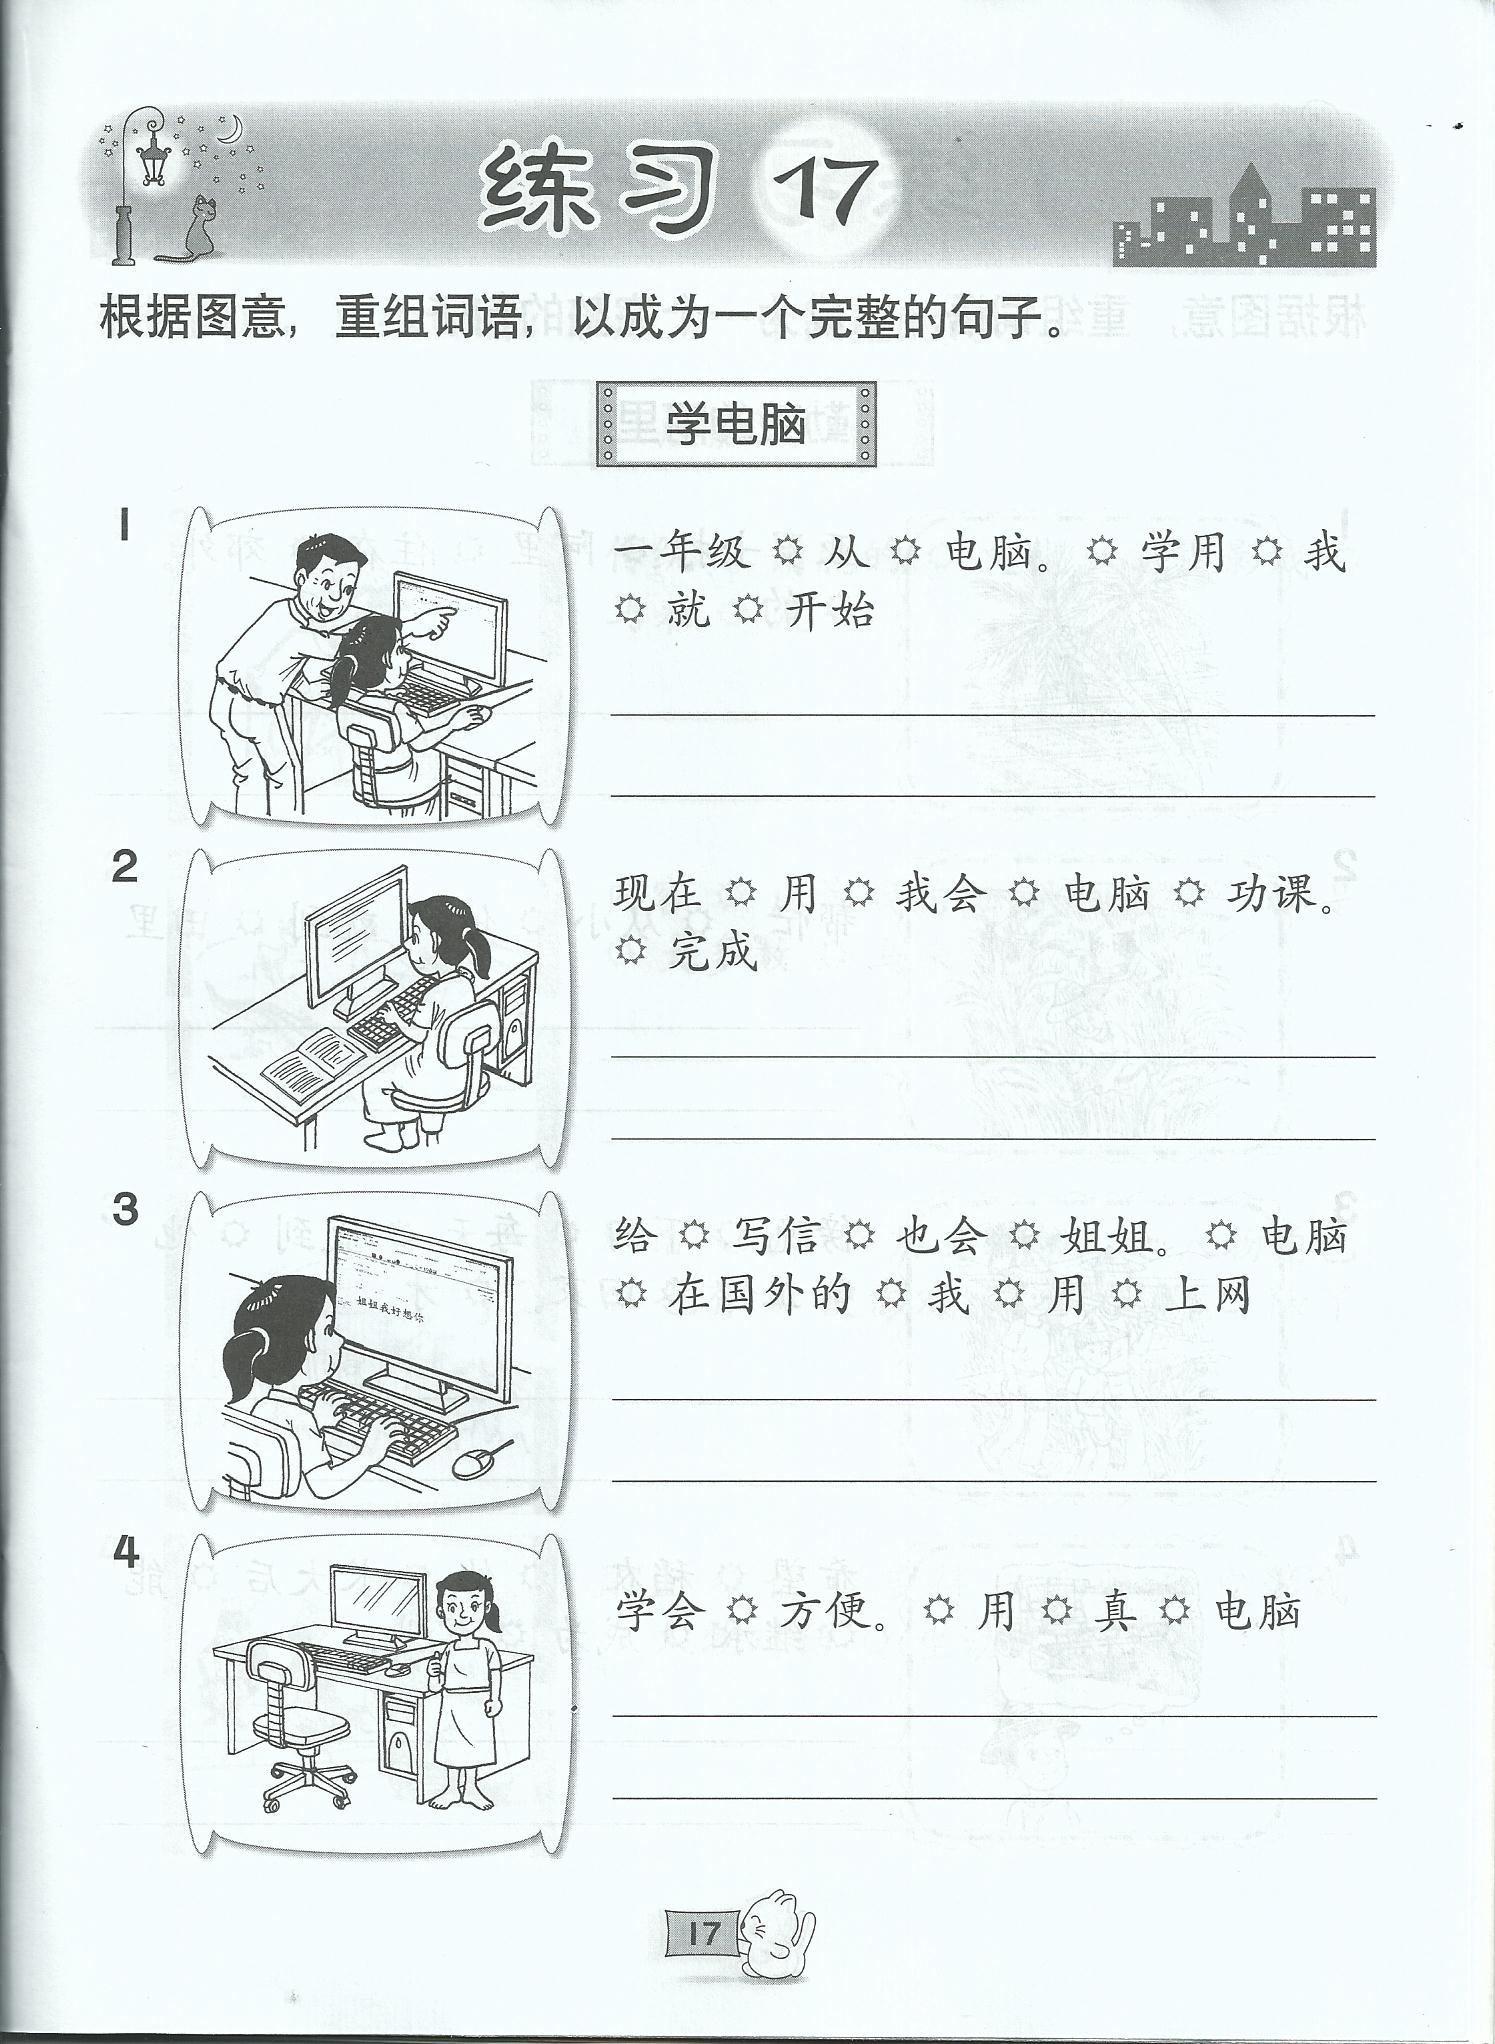 Free Worksheet Enopi Worksheets chinese life long sharing page 14 chinesesusunayat0004